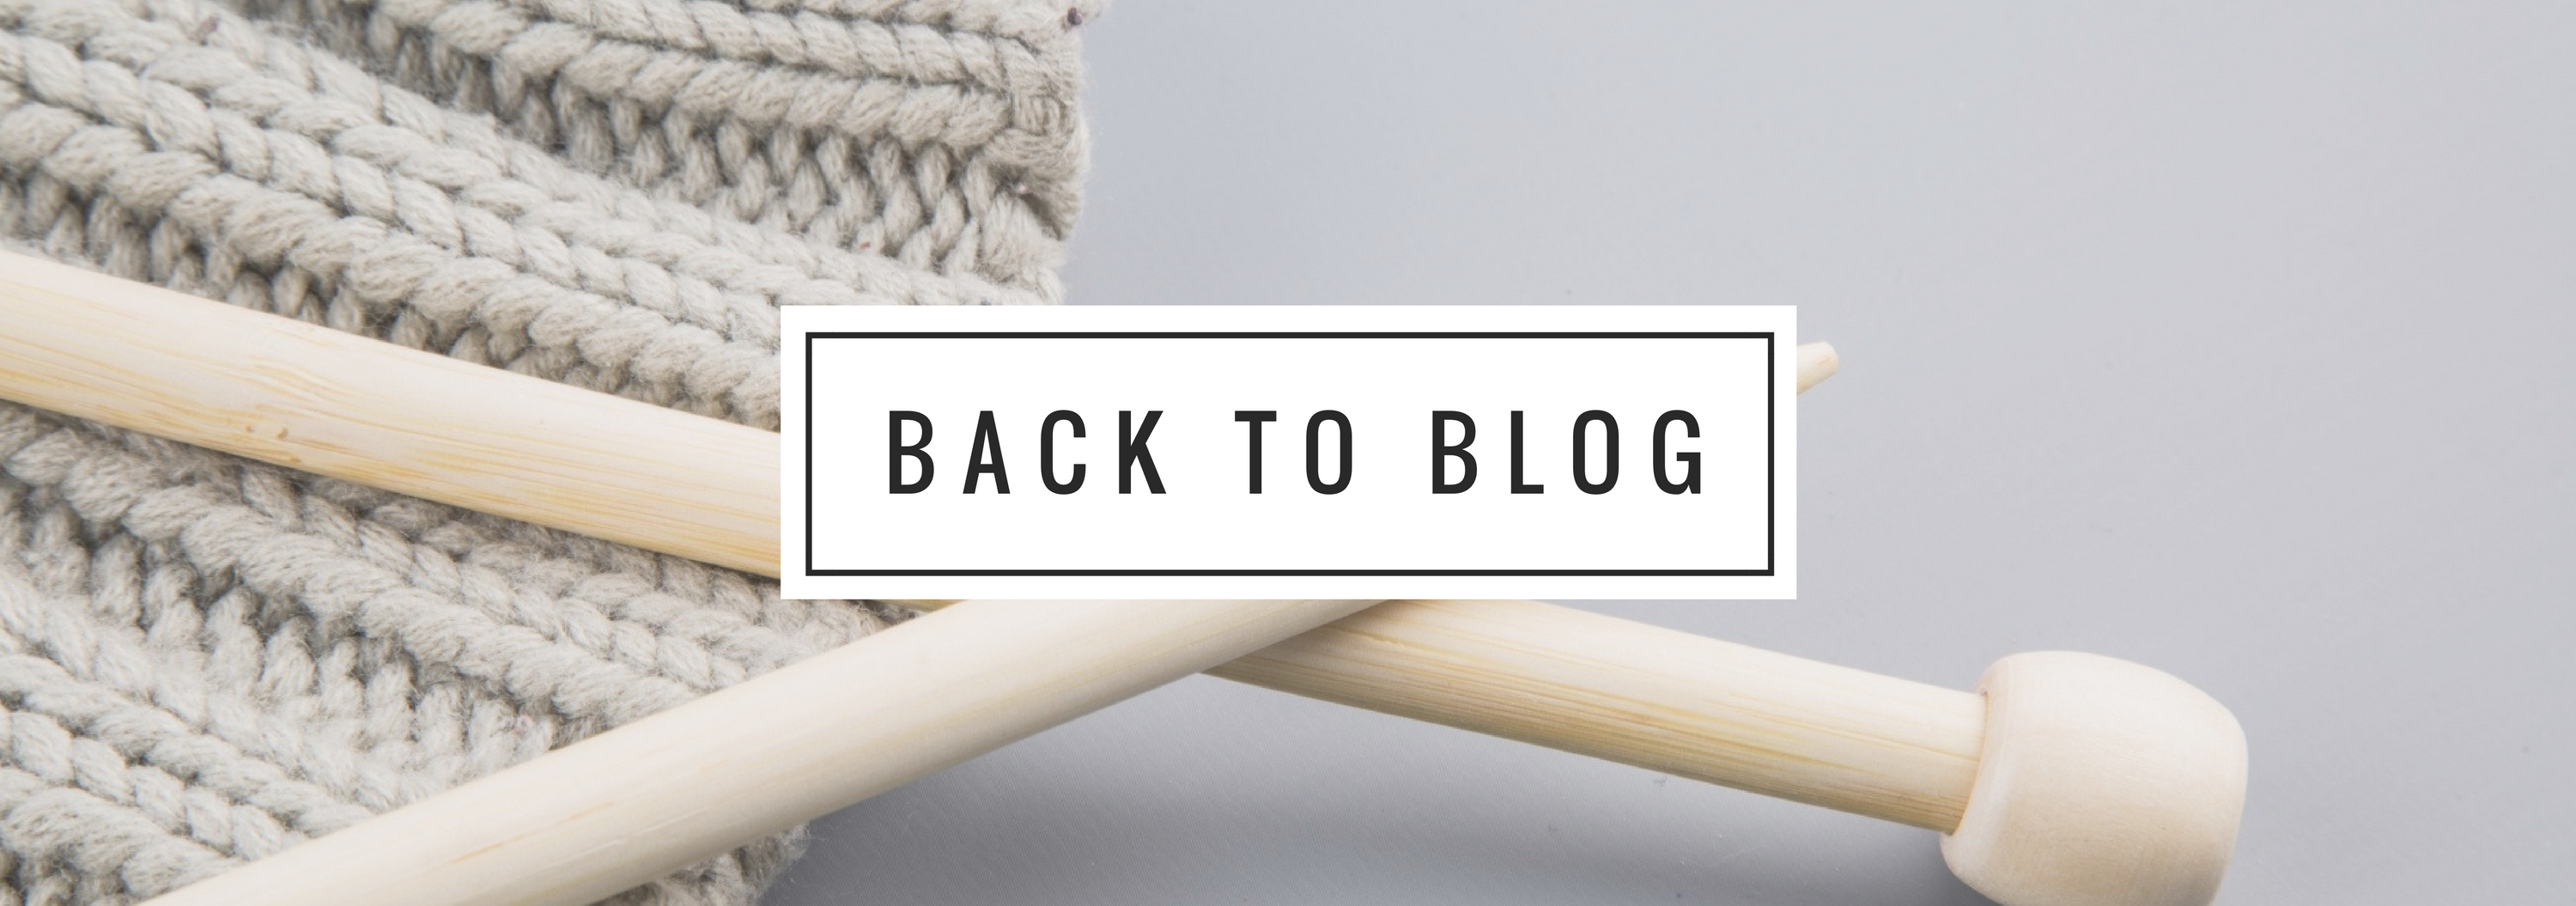 back to blog